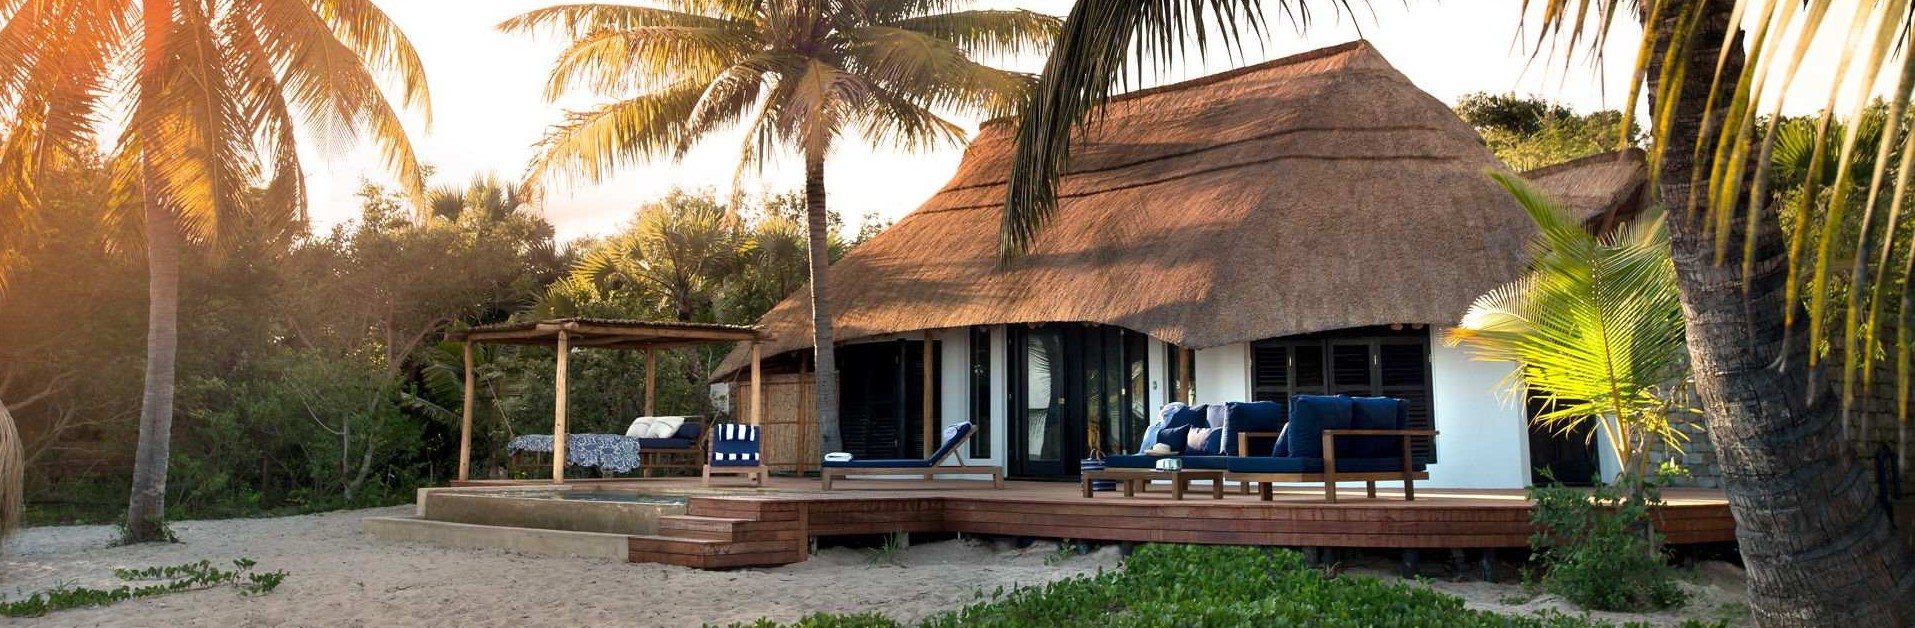 exterior-of-room-at-andbeyond-benguerra-island-in-mozambique.jpg.1920x810_0_264_10000